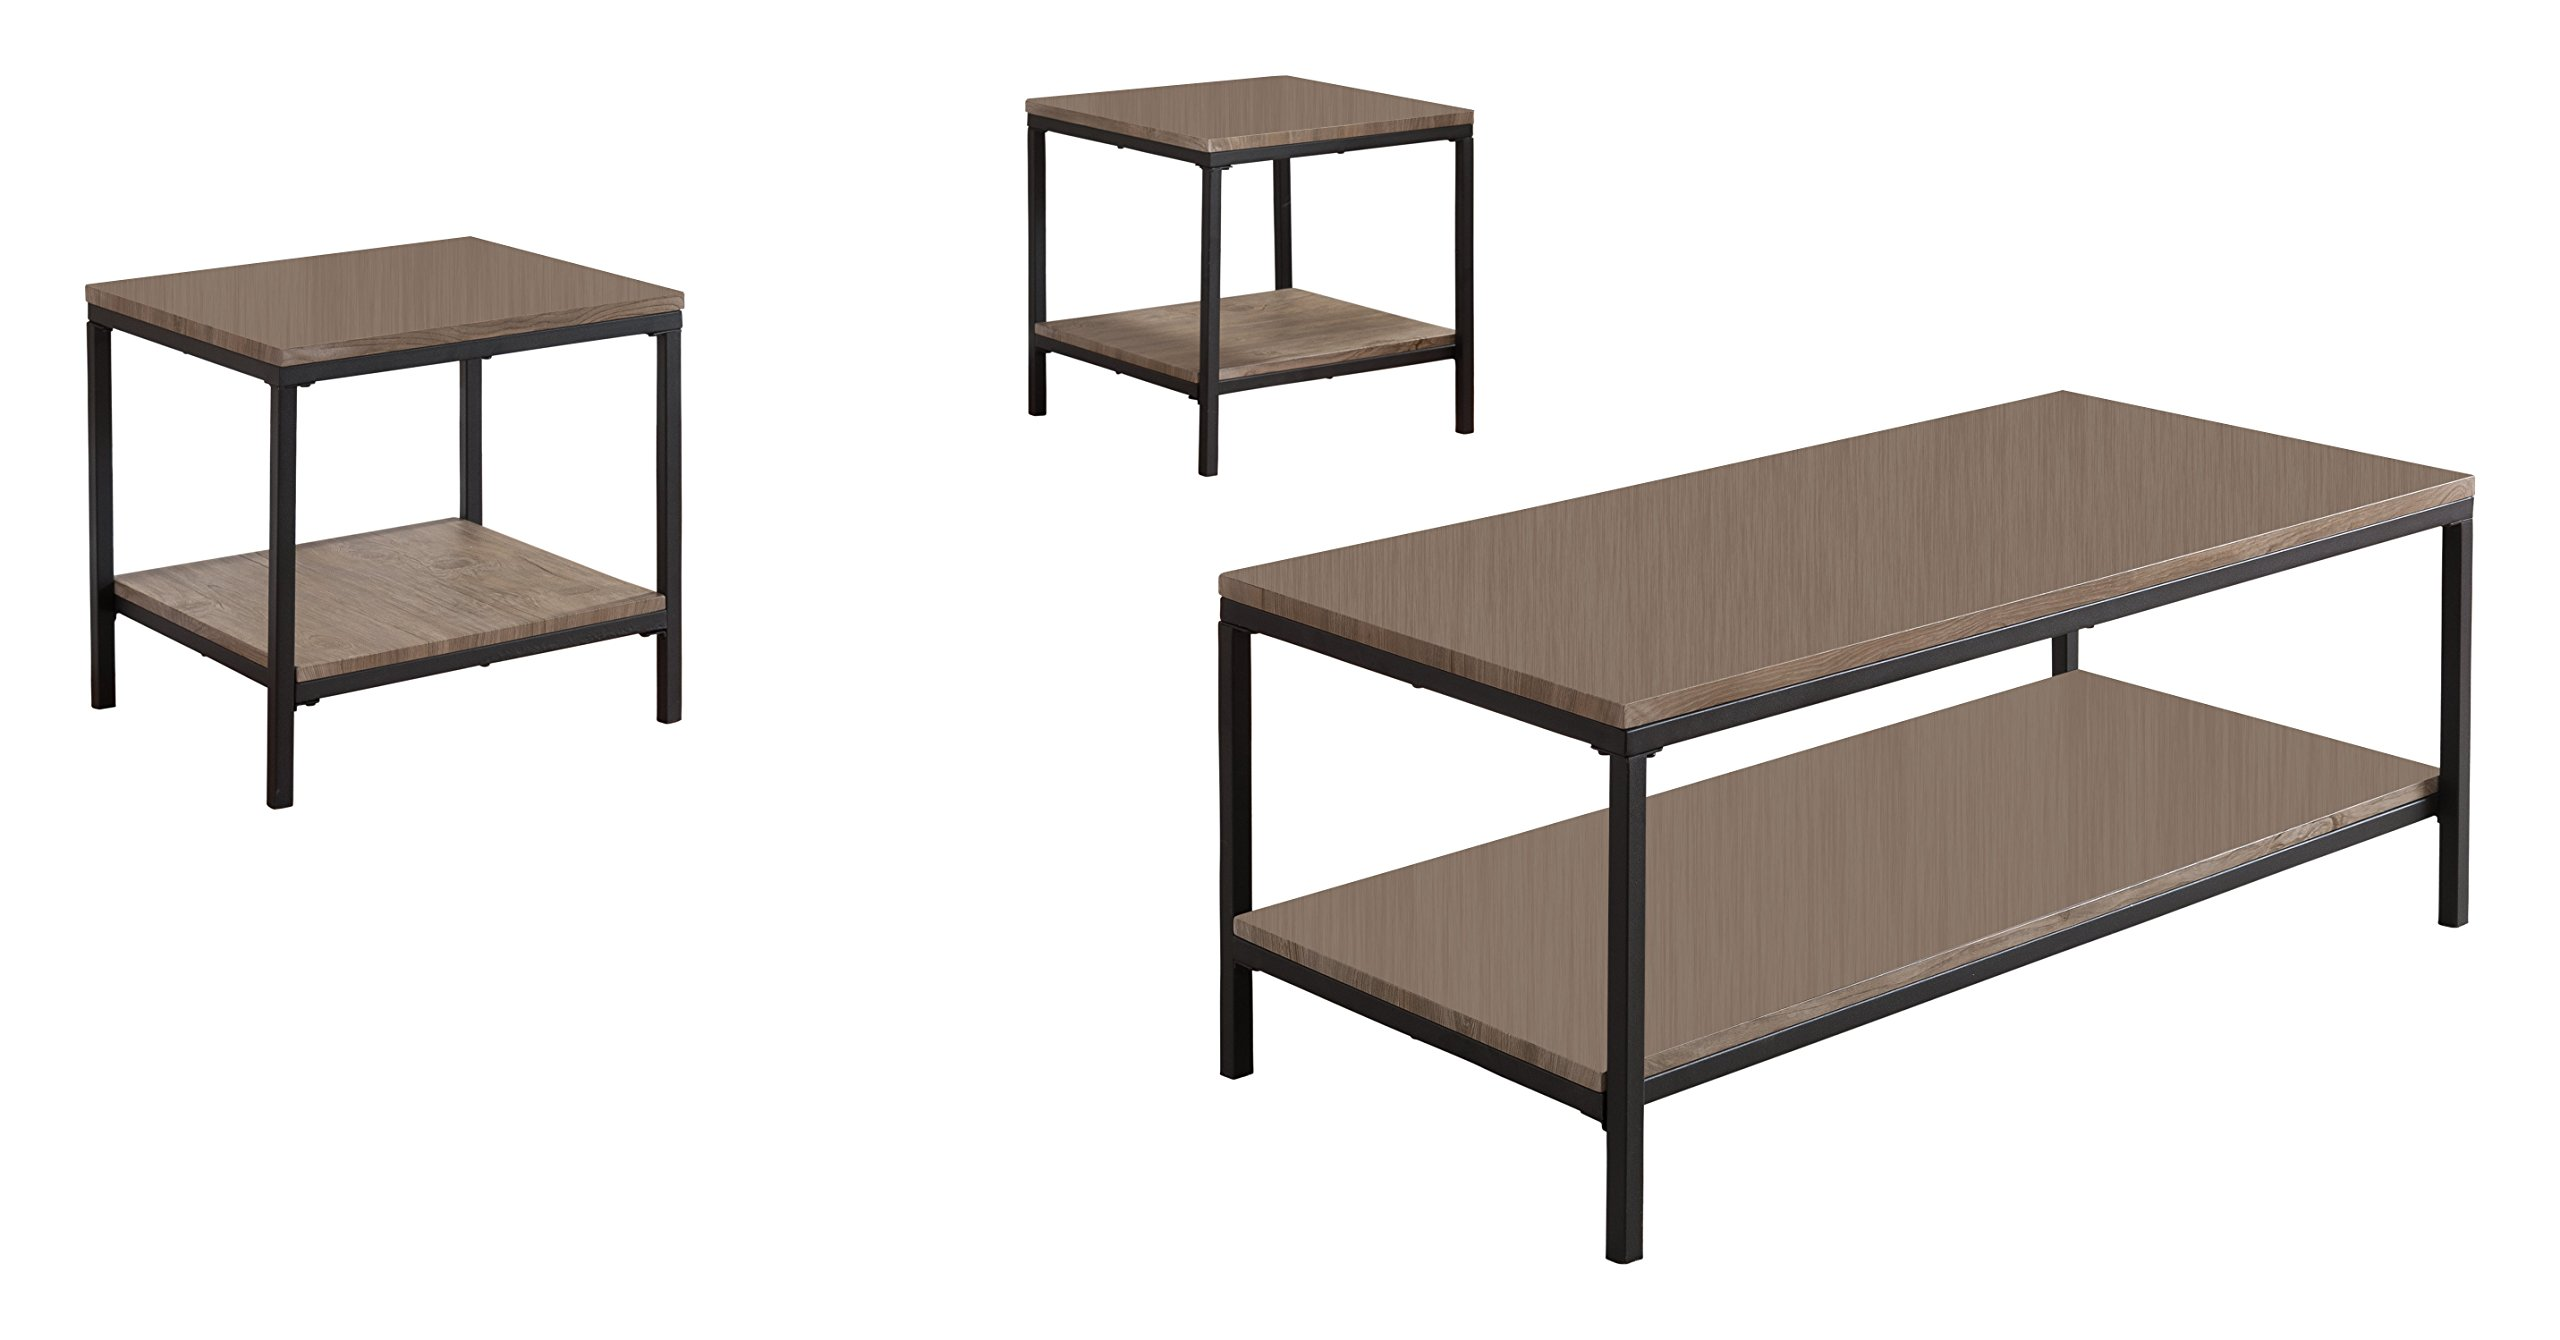 Kings Brand 3 Piece Gray / Black Occasional Table Set, Coffee Table & 2 End Tables by Kings Brand Furniture (Image #4)